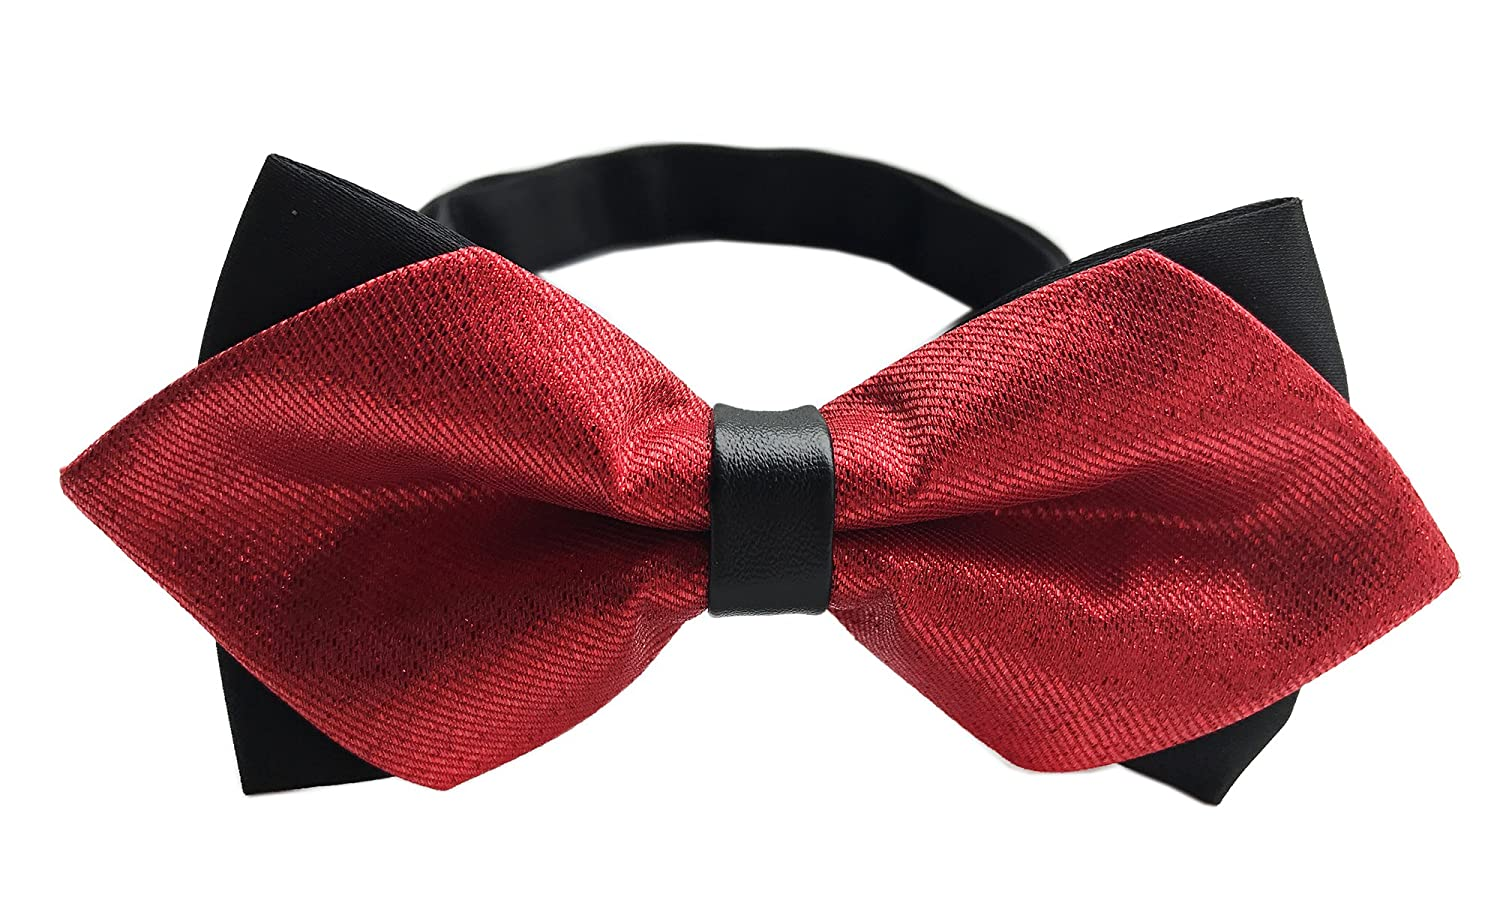 Elfeves Solid Color Pre-tie Bow Ties Double Layers Party Bowtie for Men Big Boy May18B20180507-18